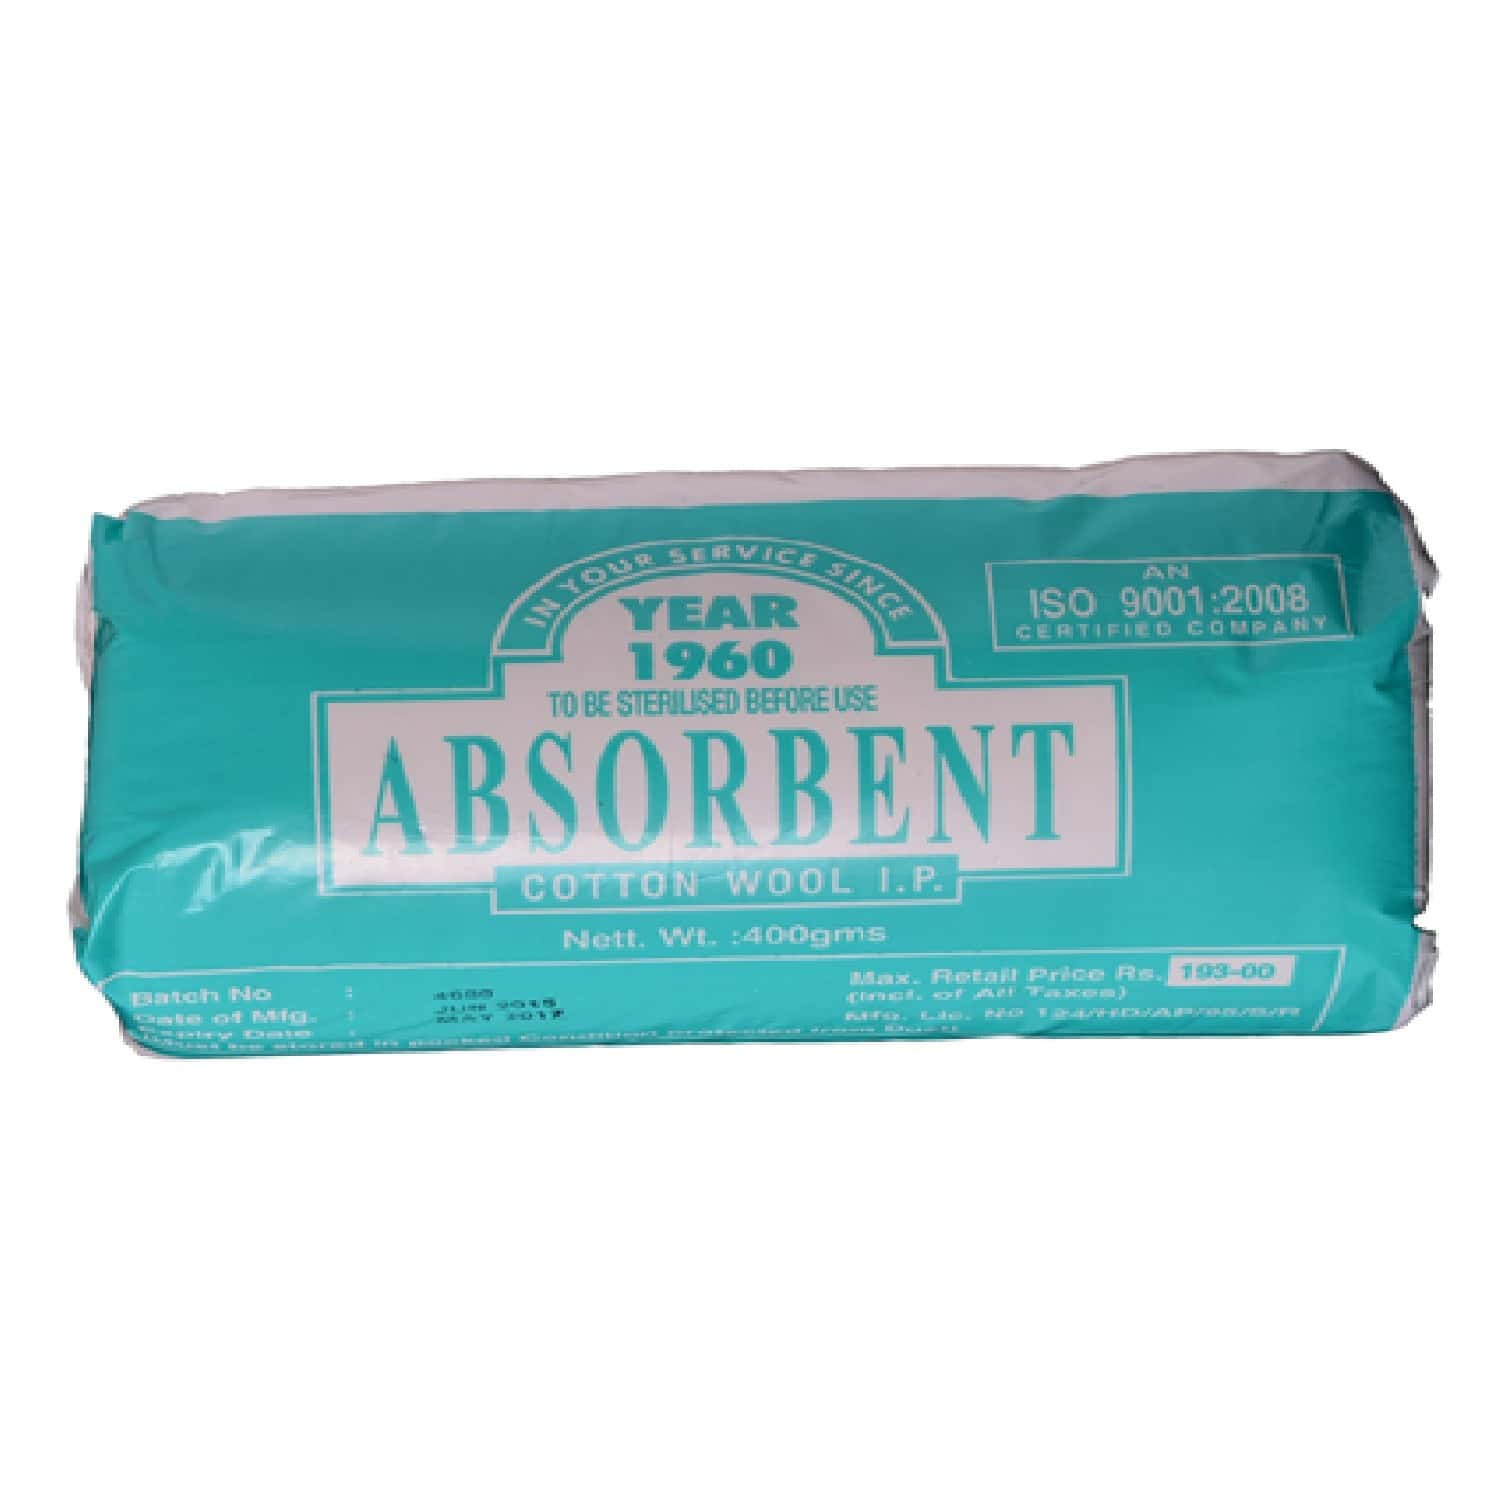 Absorbent Cotton Wool 125 Gm